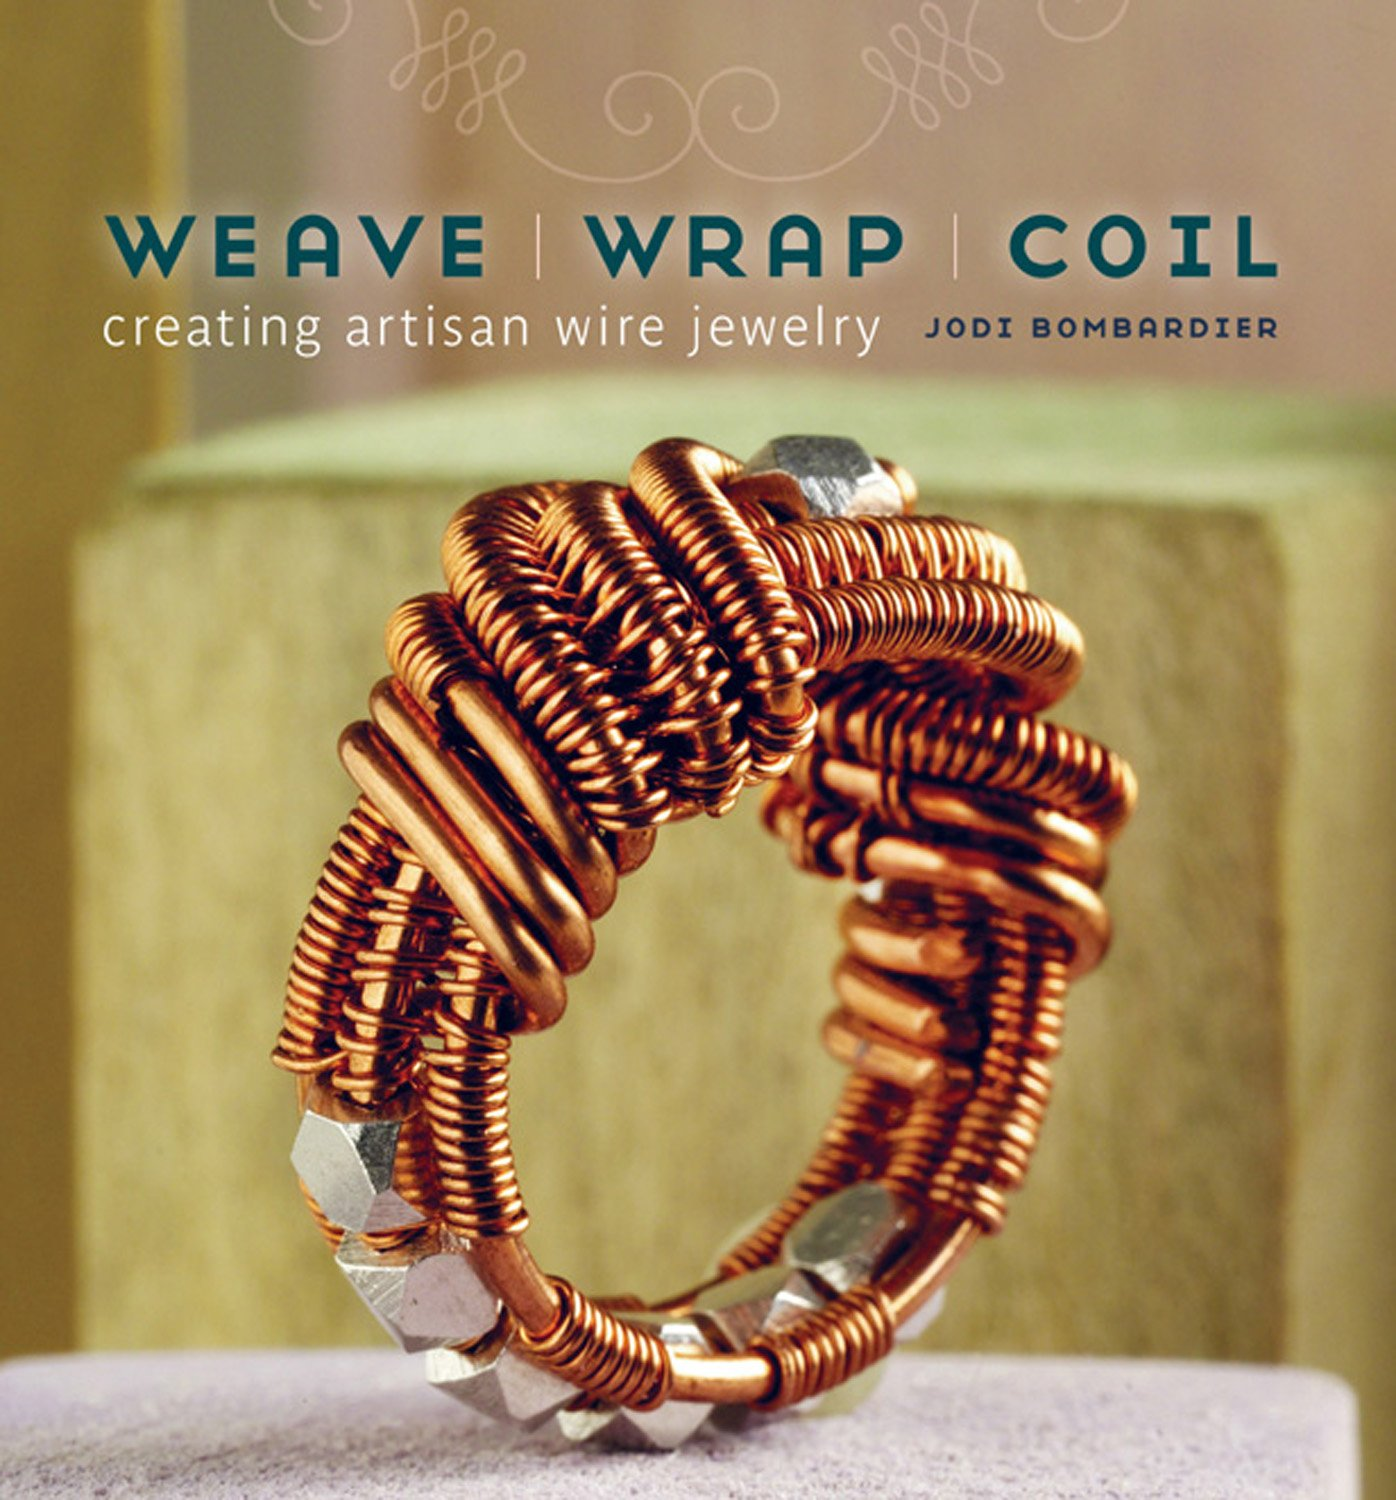 Weave Wrap Coil Creating Artisan Wire Jewelry Jodi Bombardier Wiring Diagram 9781596682009 Books